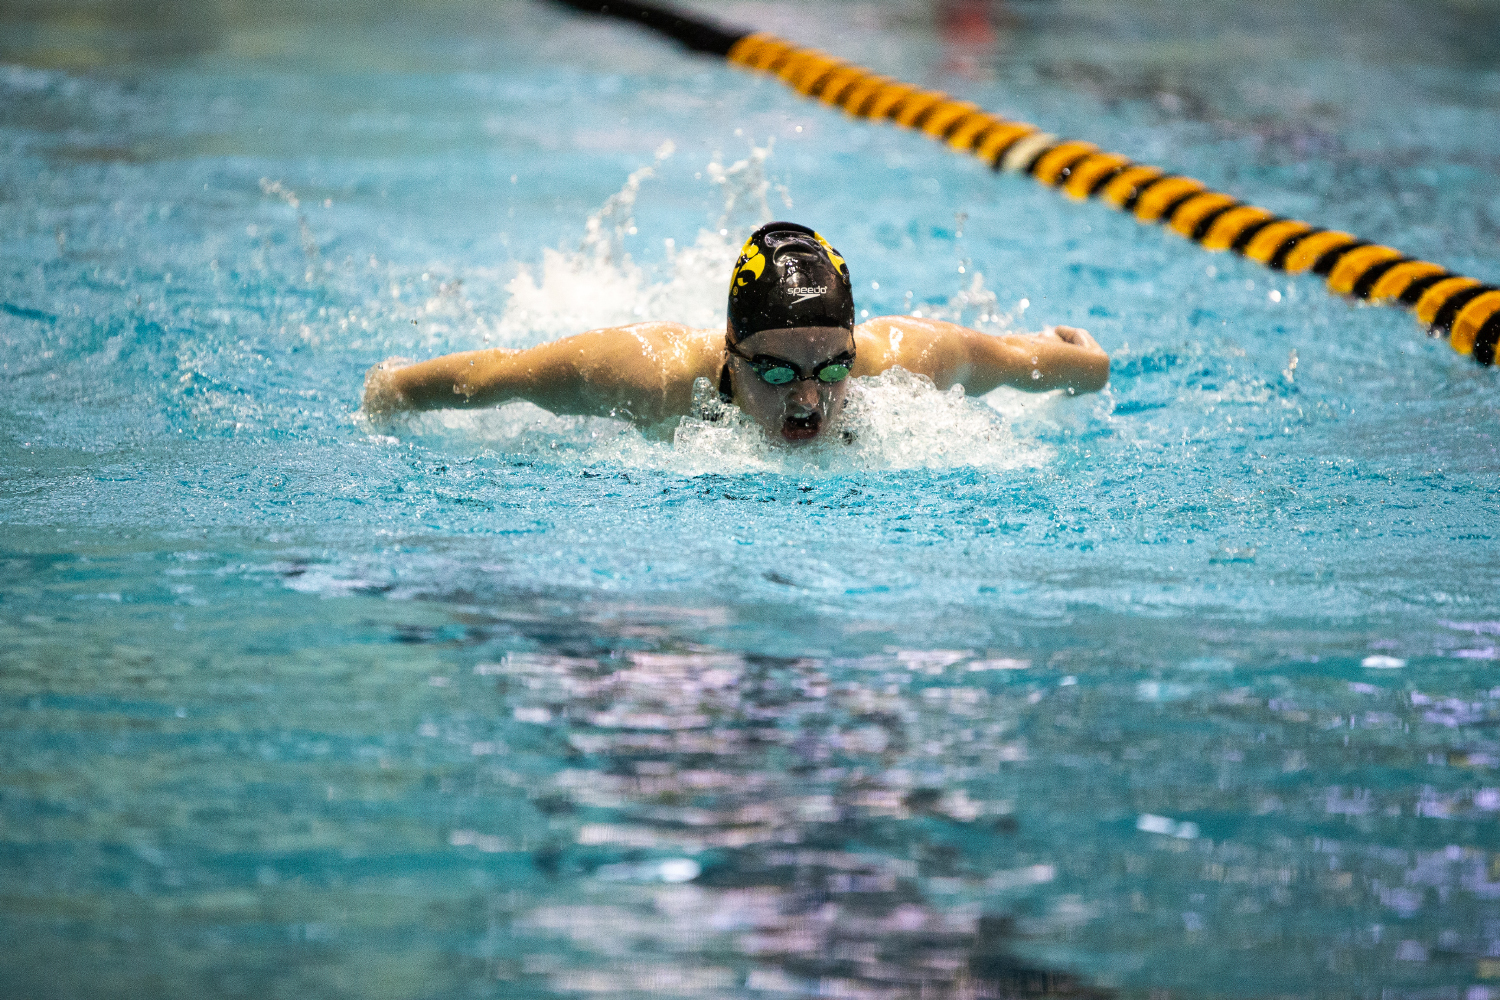 Amy Lenderink competes in the women's 200 meter breaststroke during the Hawkeye Invitational Swimming and Diving Meet on Saturday, November 17, 2018. Fifteen university swimming and diving teams competed at this event.